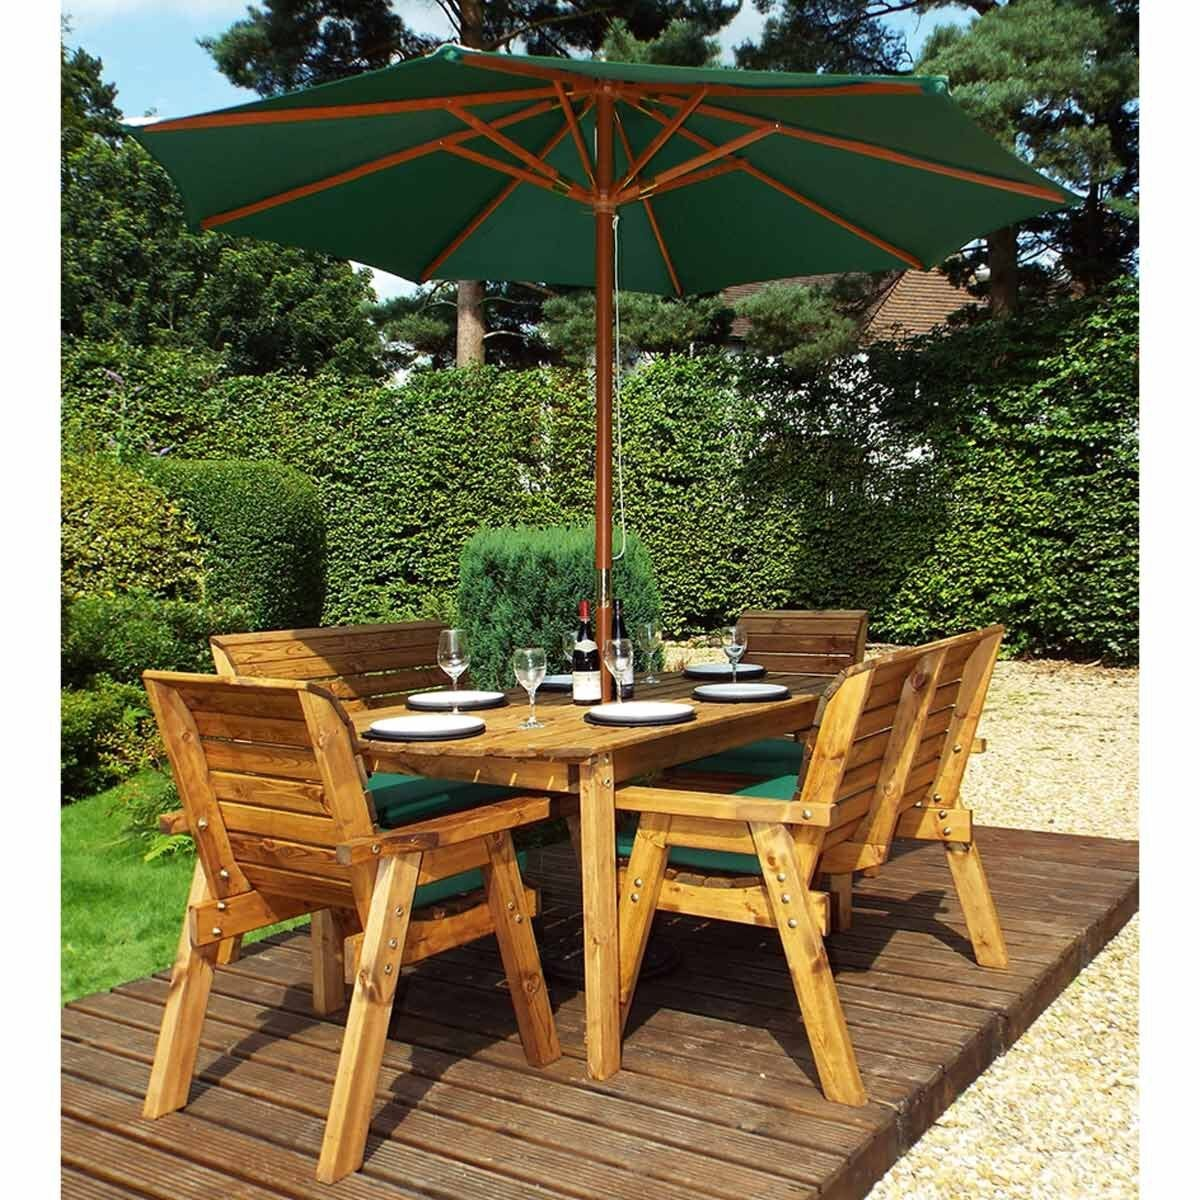 Charles Taylor Six Seater Table Set with Benches and Parasol